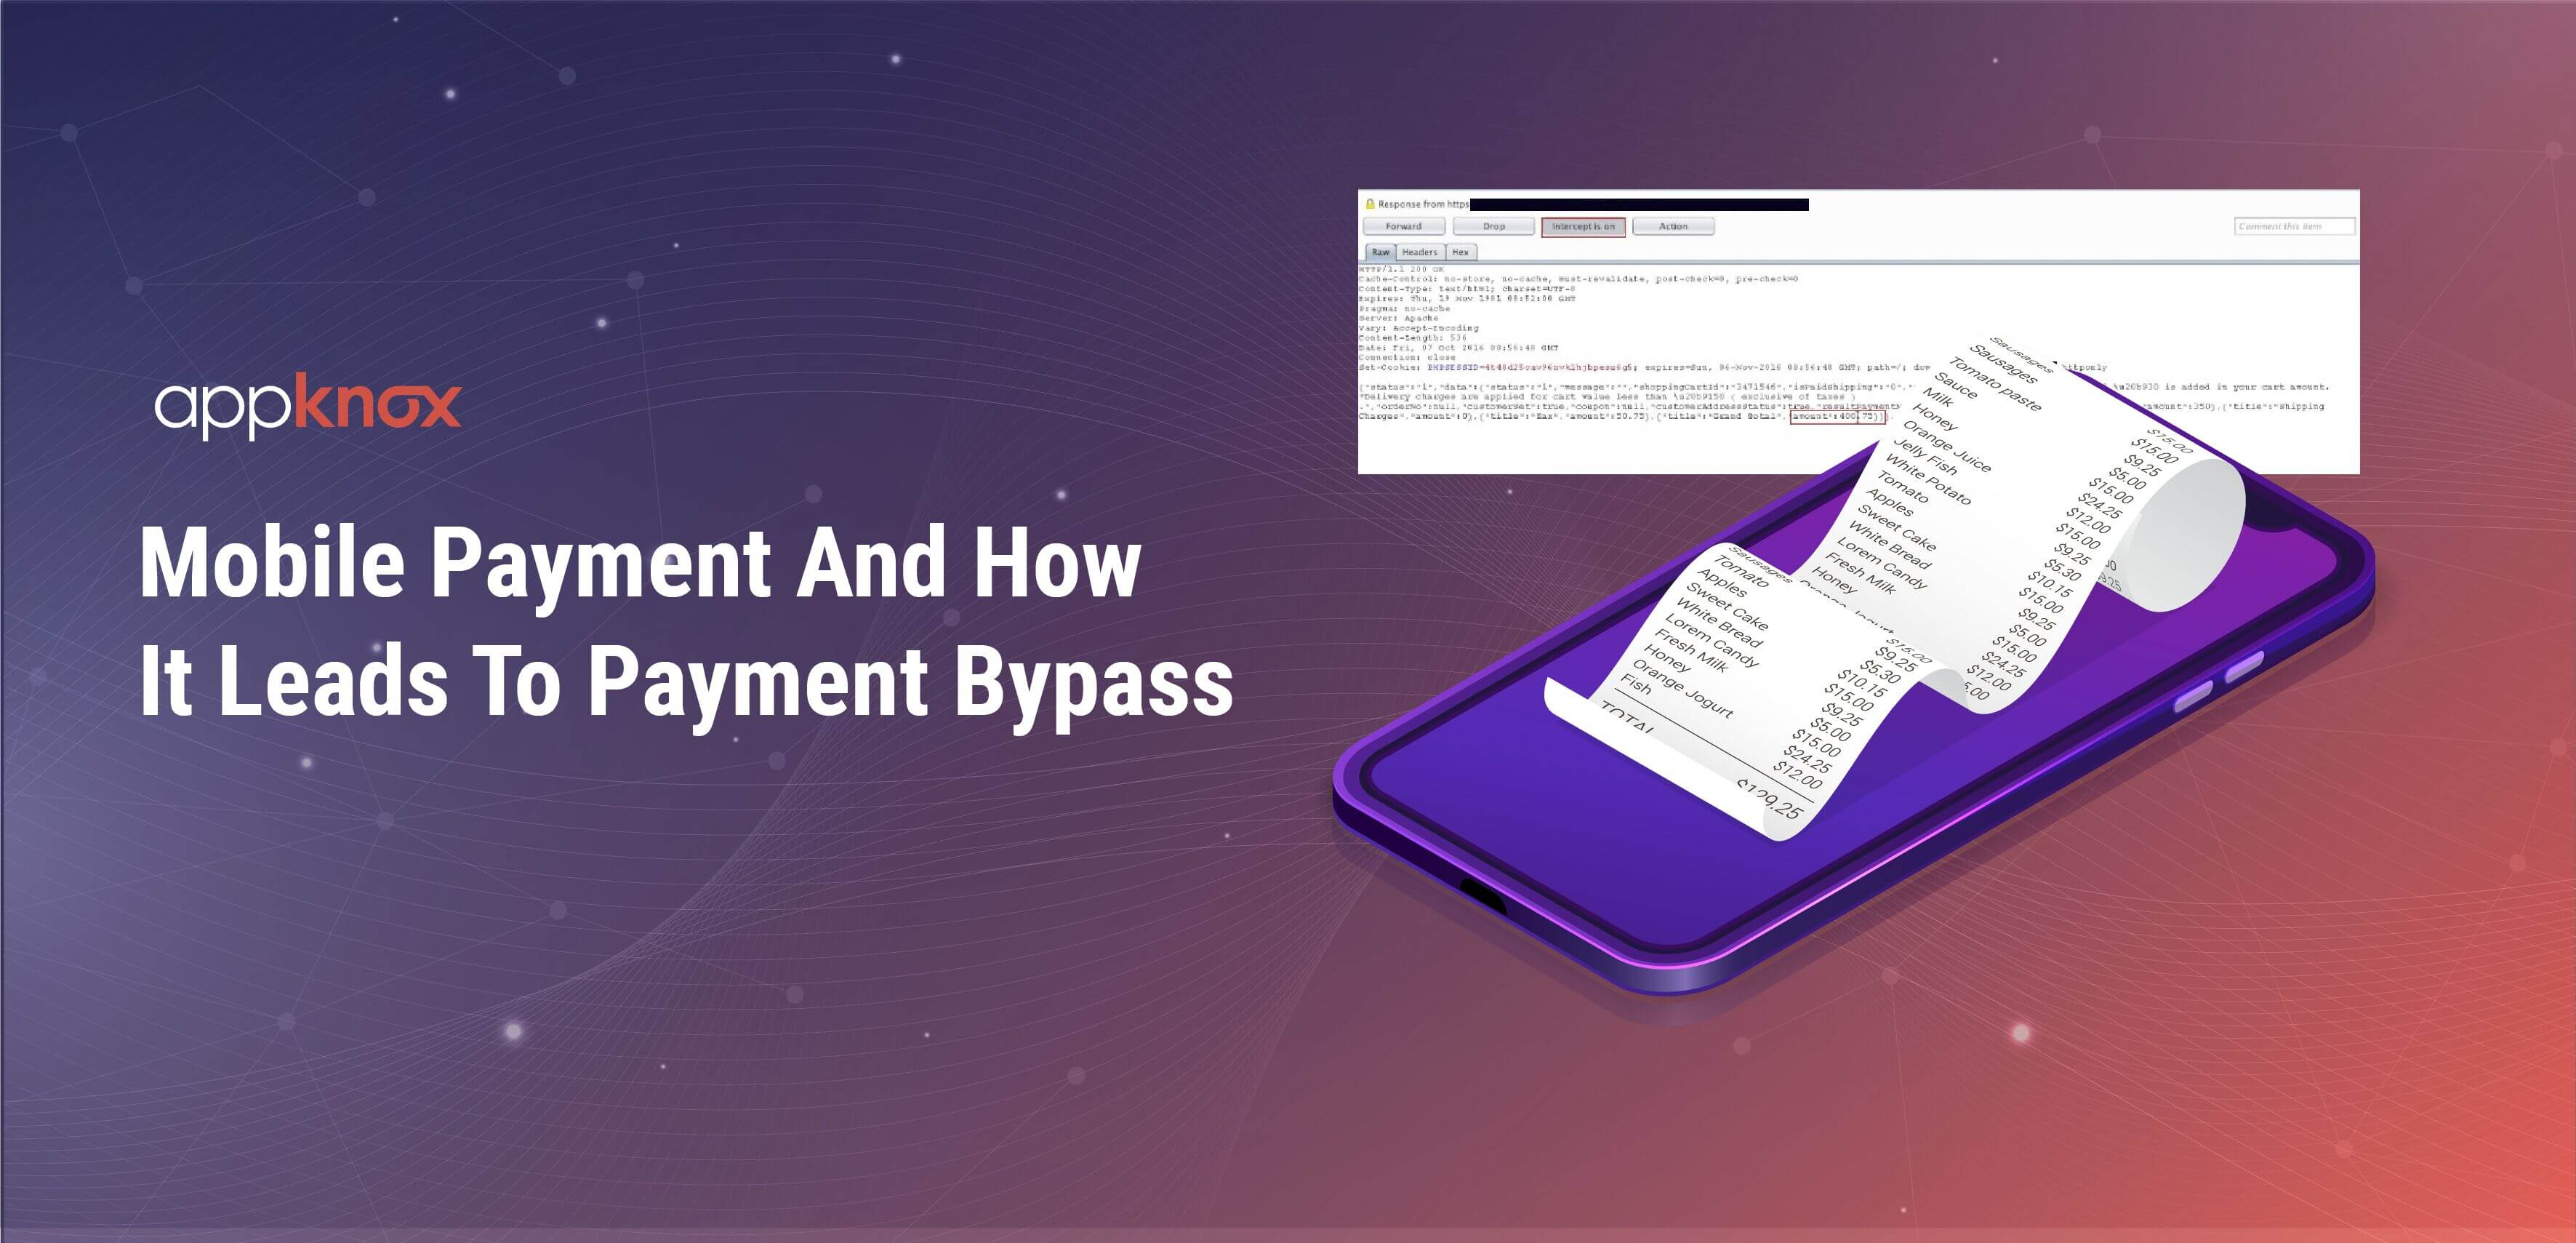 Mobile Payments and How it Leads to Payment Bypass